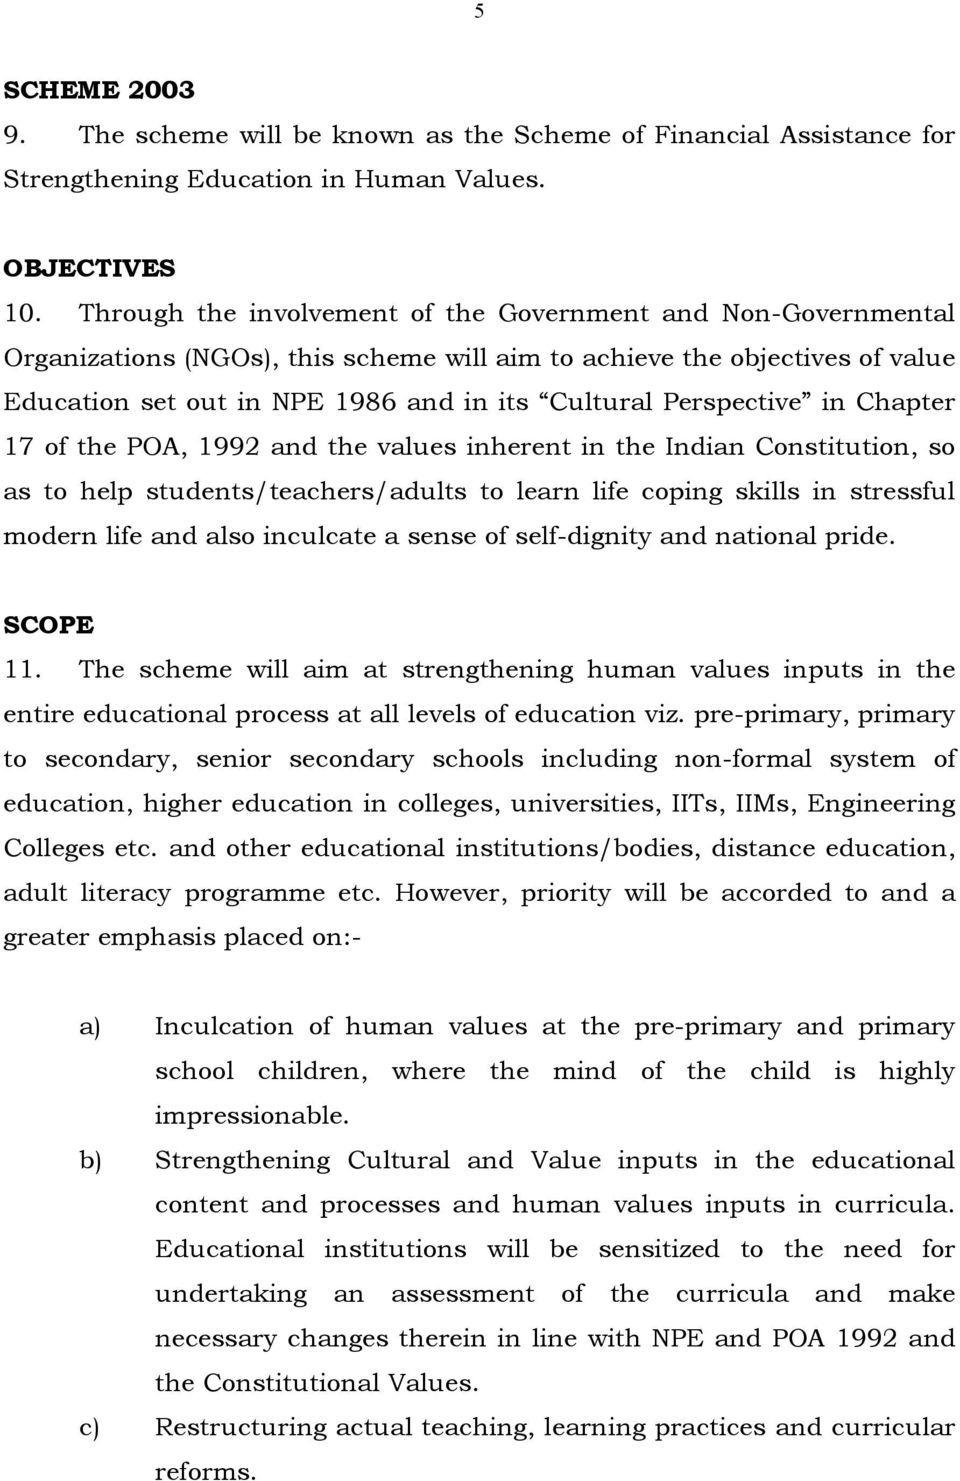 Perspective in Chapter 17 of the POA, 1992 and the values inherent in the Indian Constitution, so as to help students/teachers/adults to learn life coping skills in stressful modern life and also